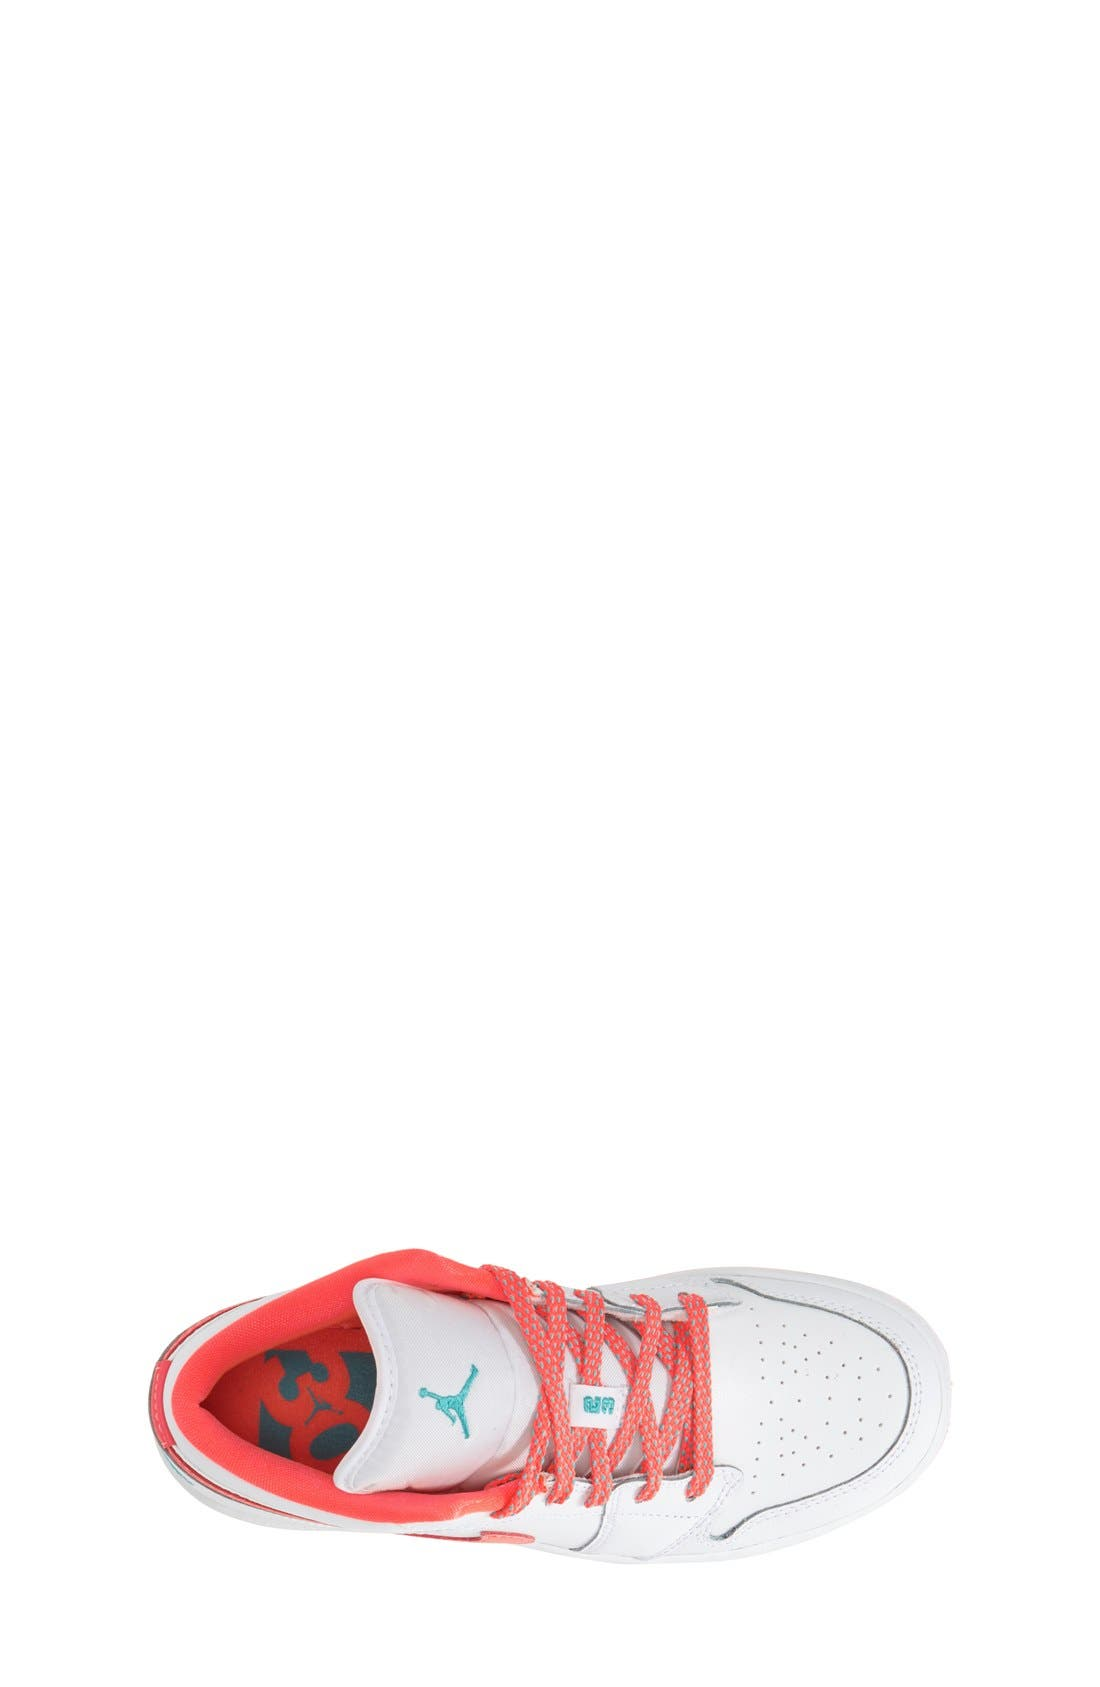 Nike 'Jordan 1 Low' Basketball Shoe,                             Alternate thumbnail 4, color,